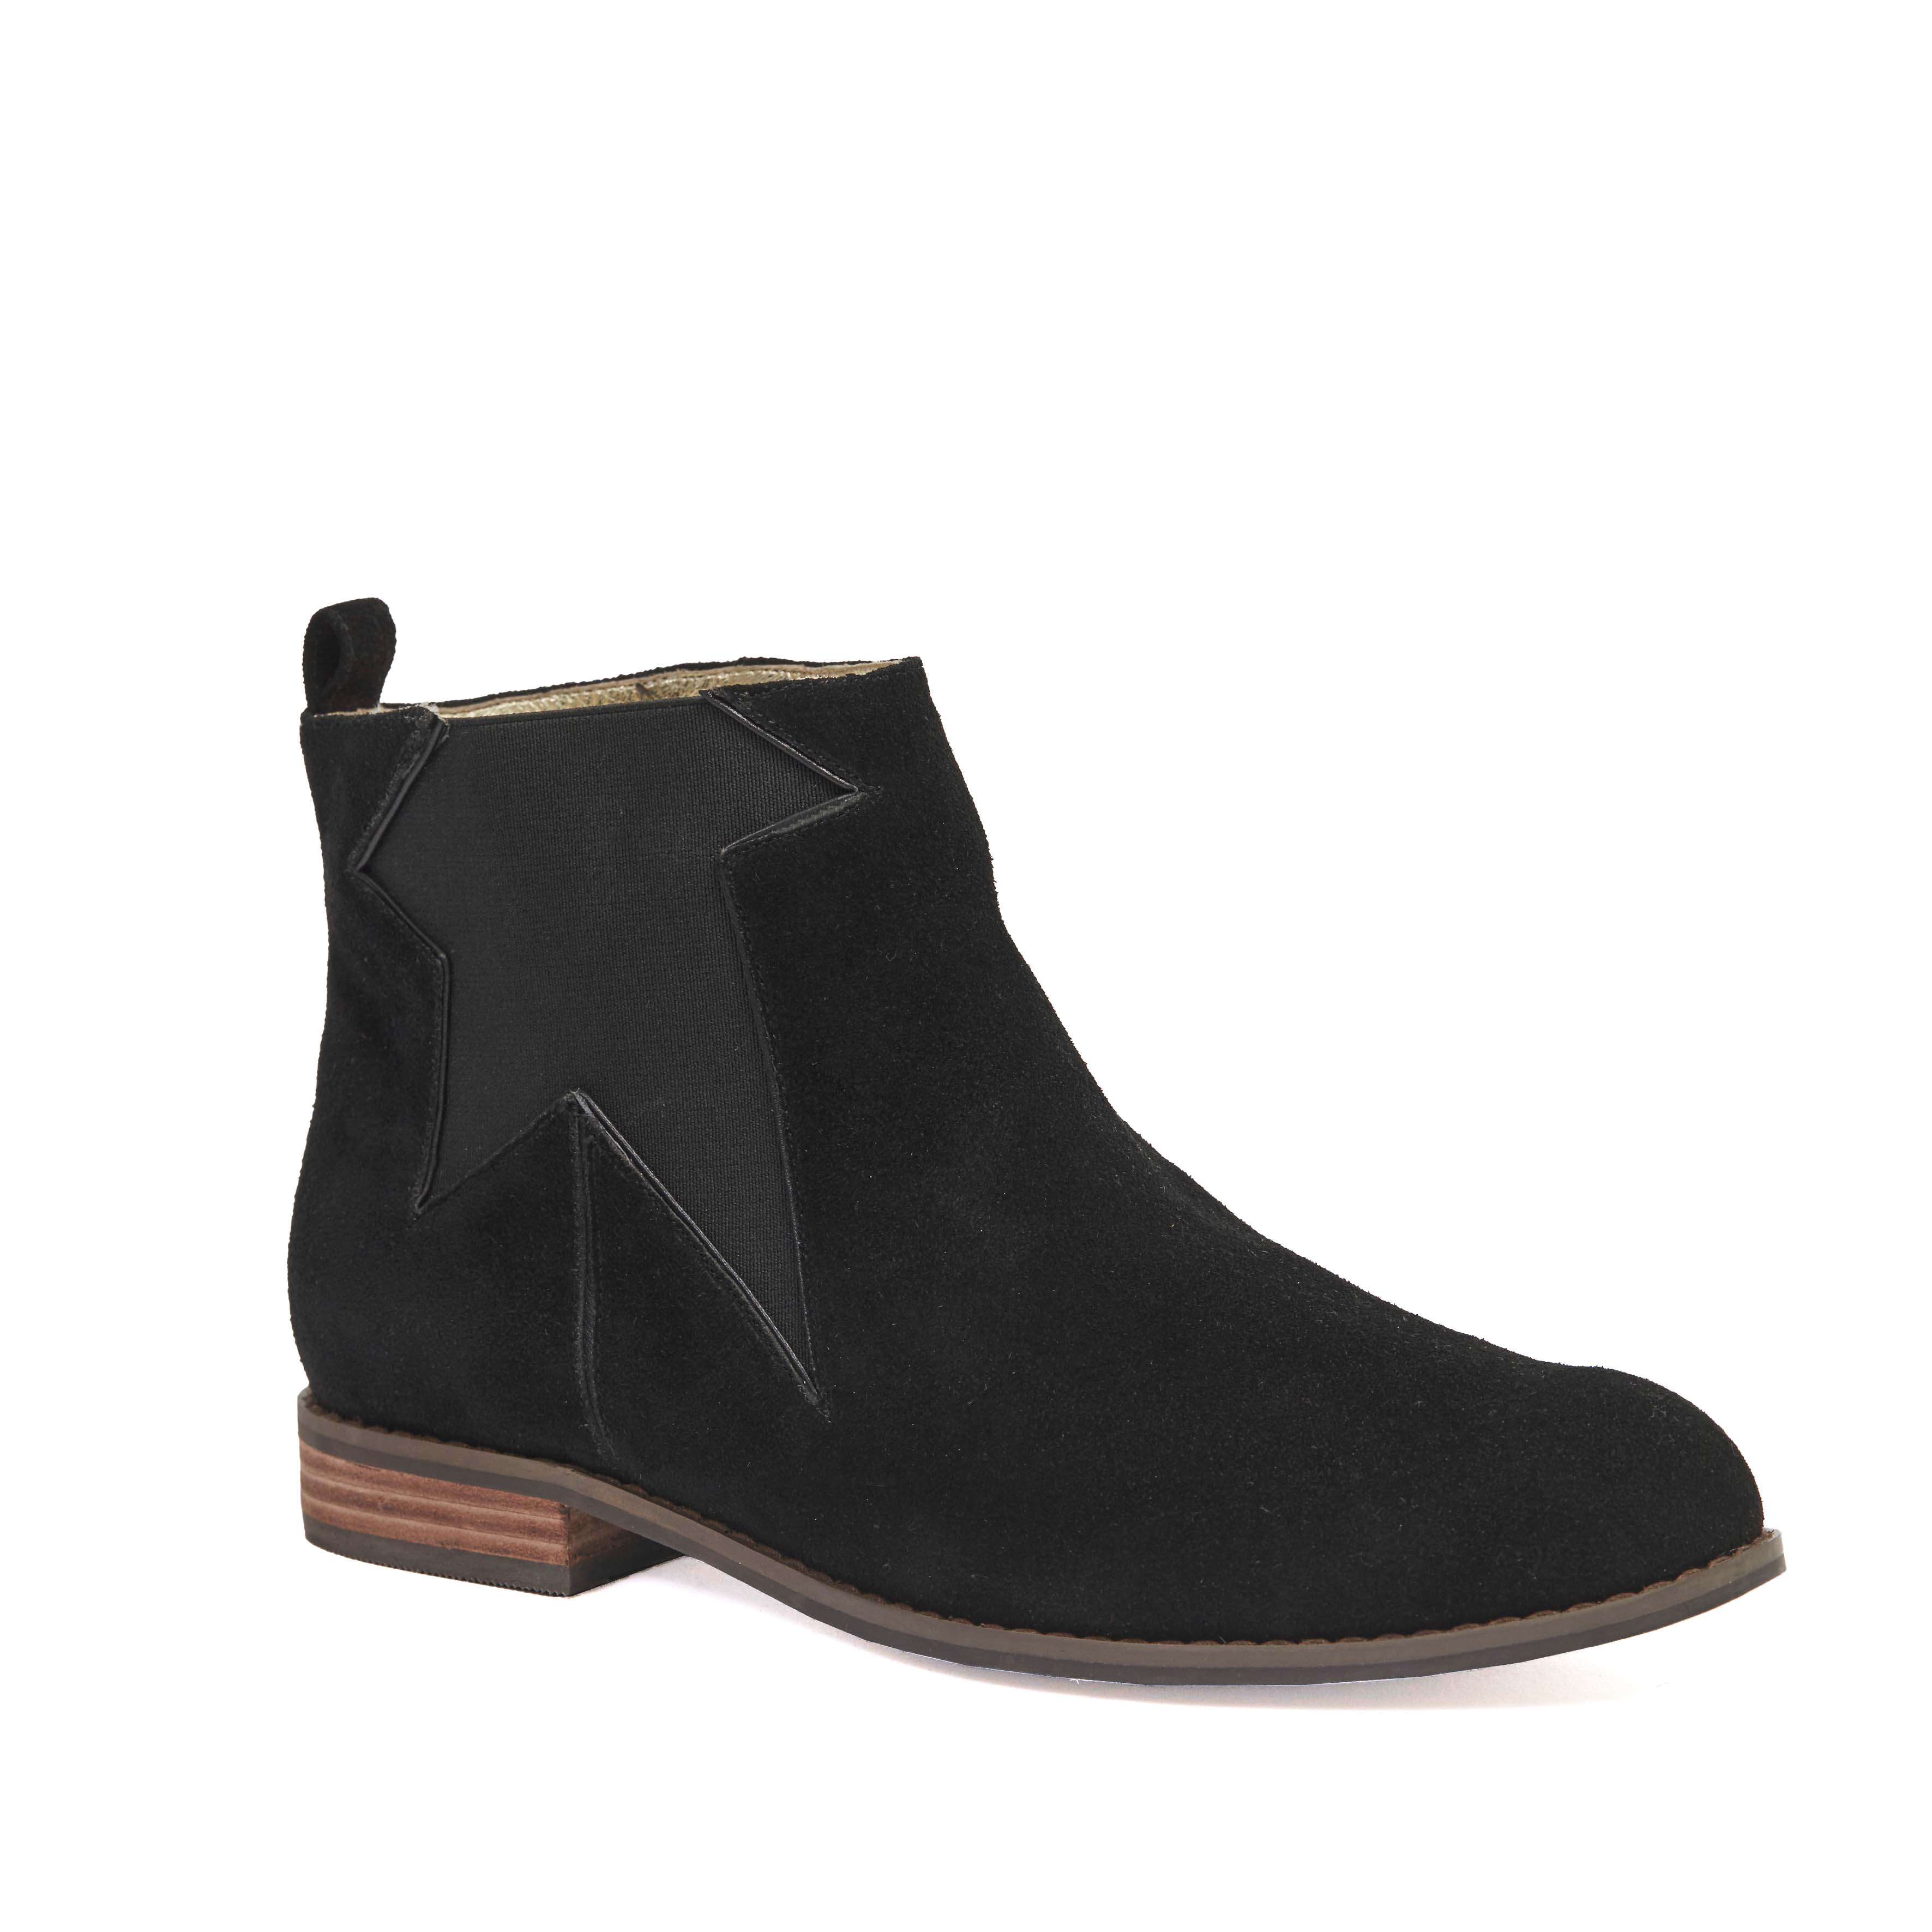 410 Kathleen Boot Black Suede